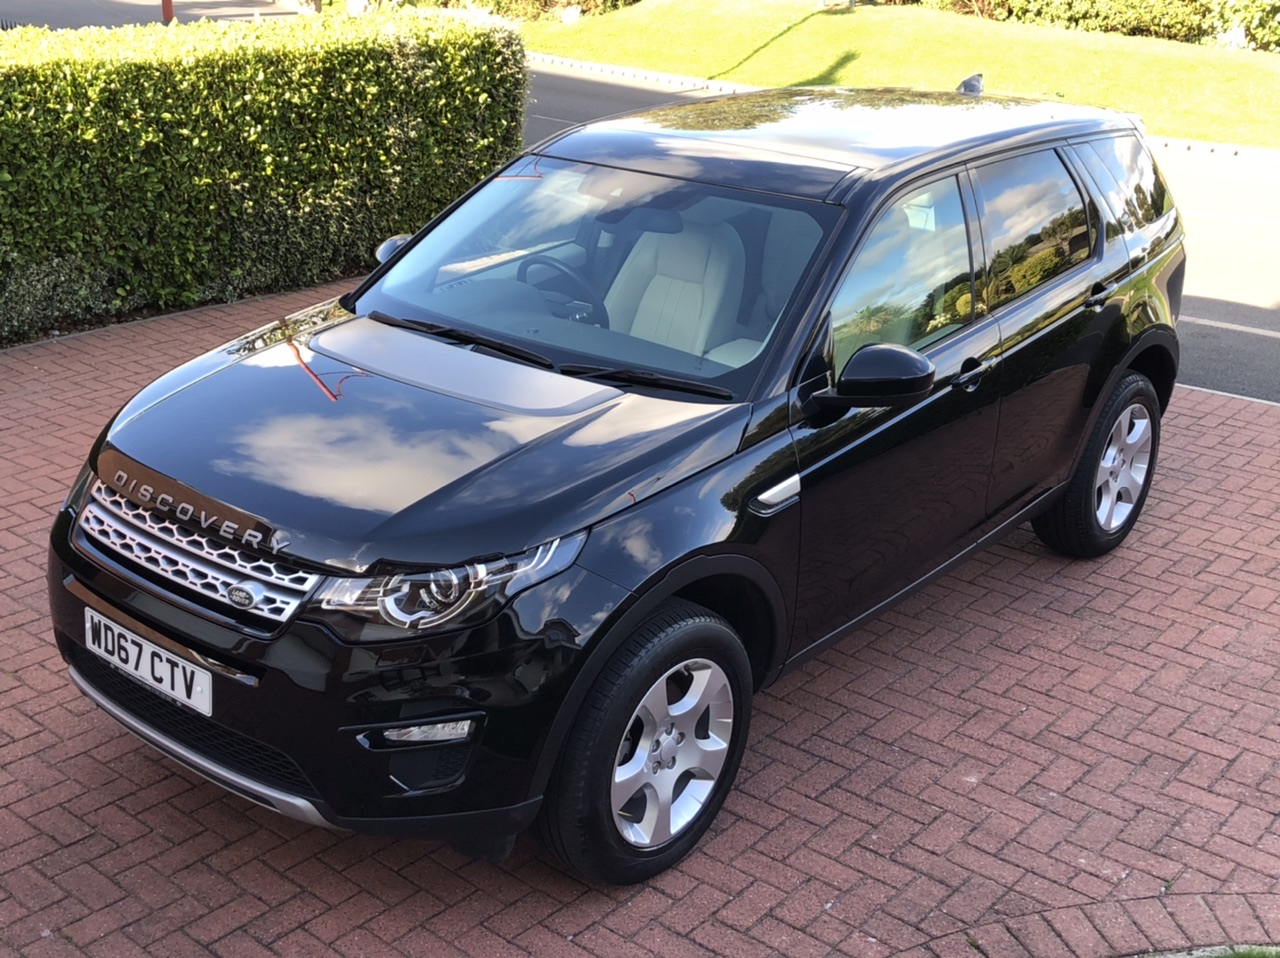 2018 LAND ROVER DISCOVERY SPORT 2.0 ED4 HSE MANUAL